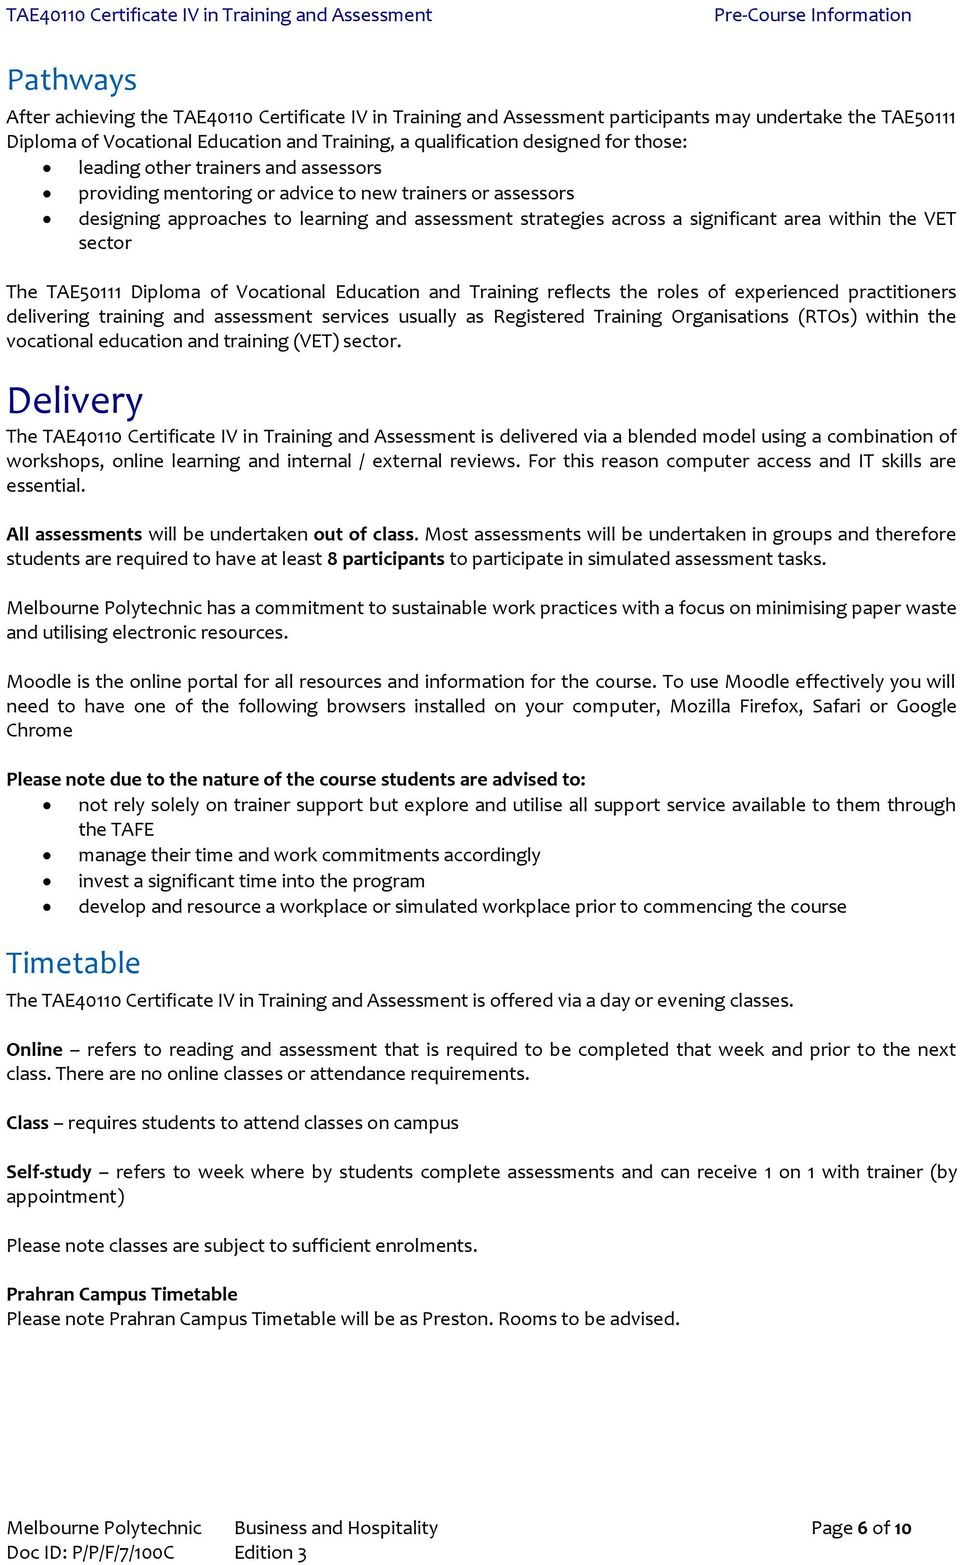 VET sector The TAE50111 Diploma of Vocational Education and Training reflects the roles of experienced practitioners delivering training and assessment services usually as Registered Training